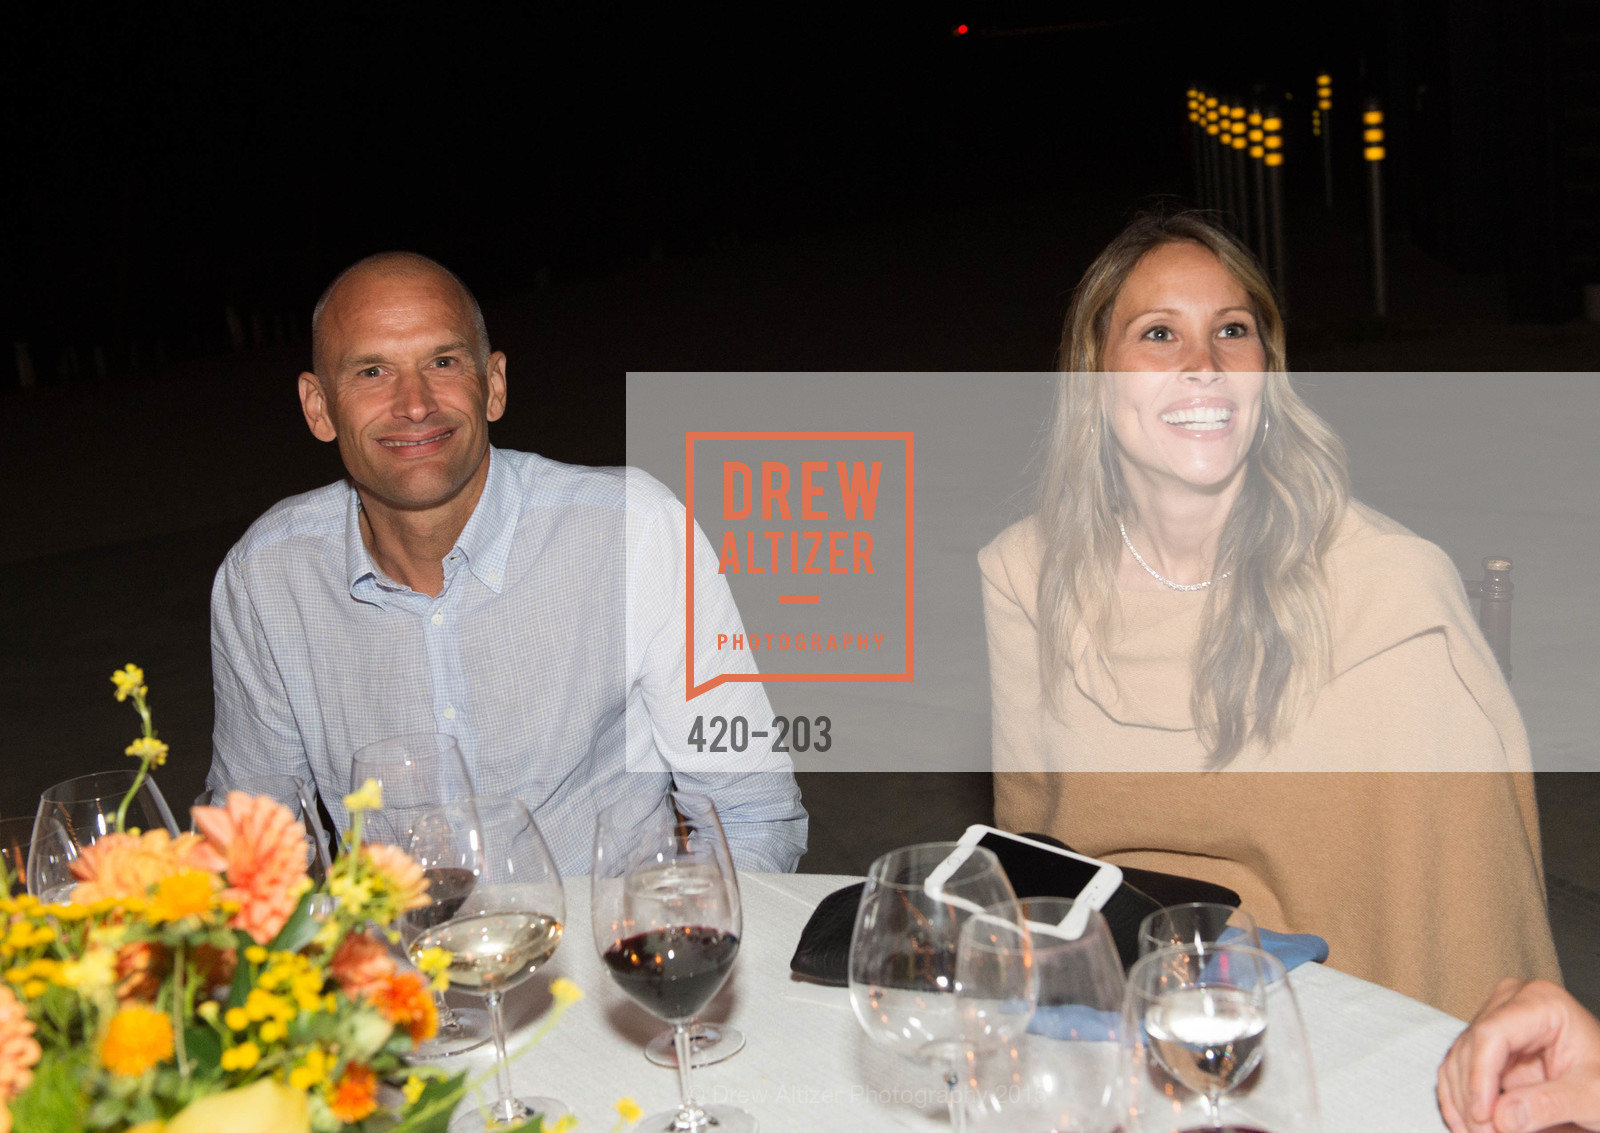 Extras, Festival del Sole Patron Dinner at Odette Estate, July 26th, 2015, Photo,Drew Altizer, Drew Altizer Photography, full-service agency, private events, San Francisco photographer, photographer california